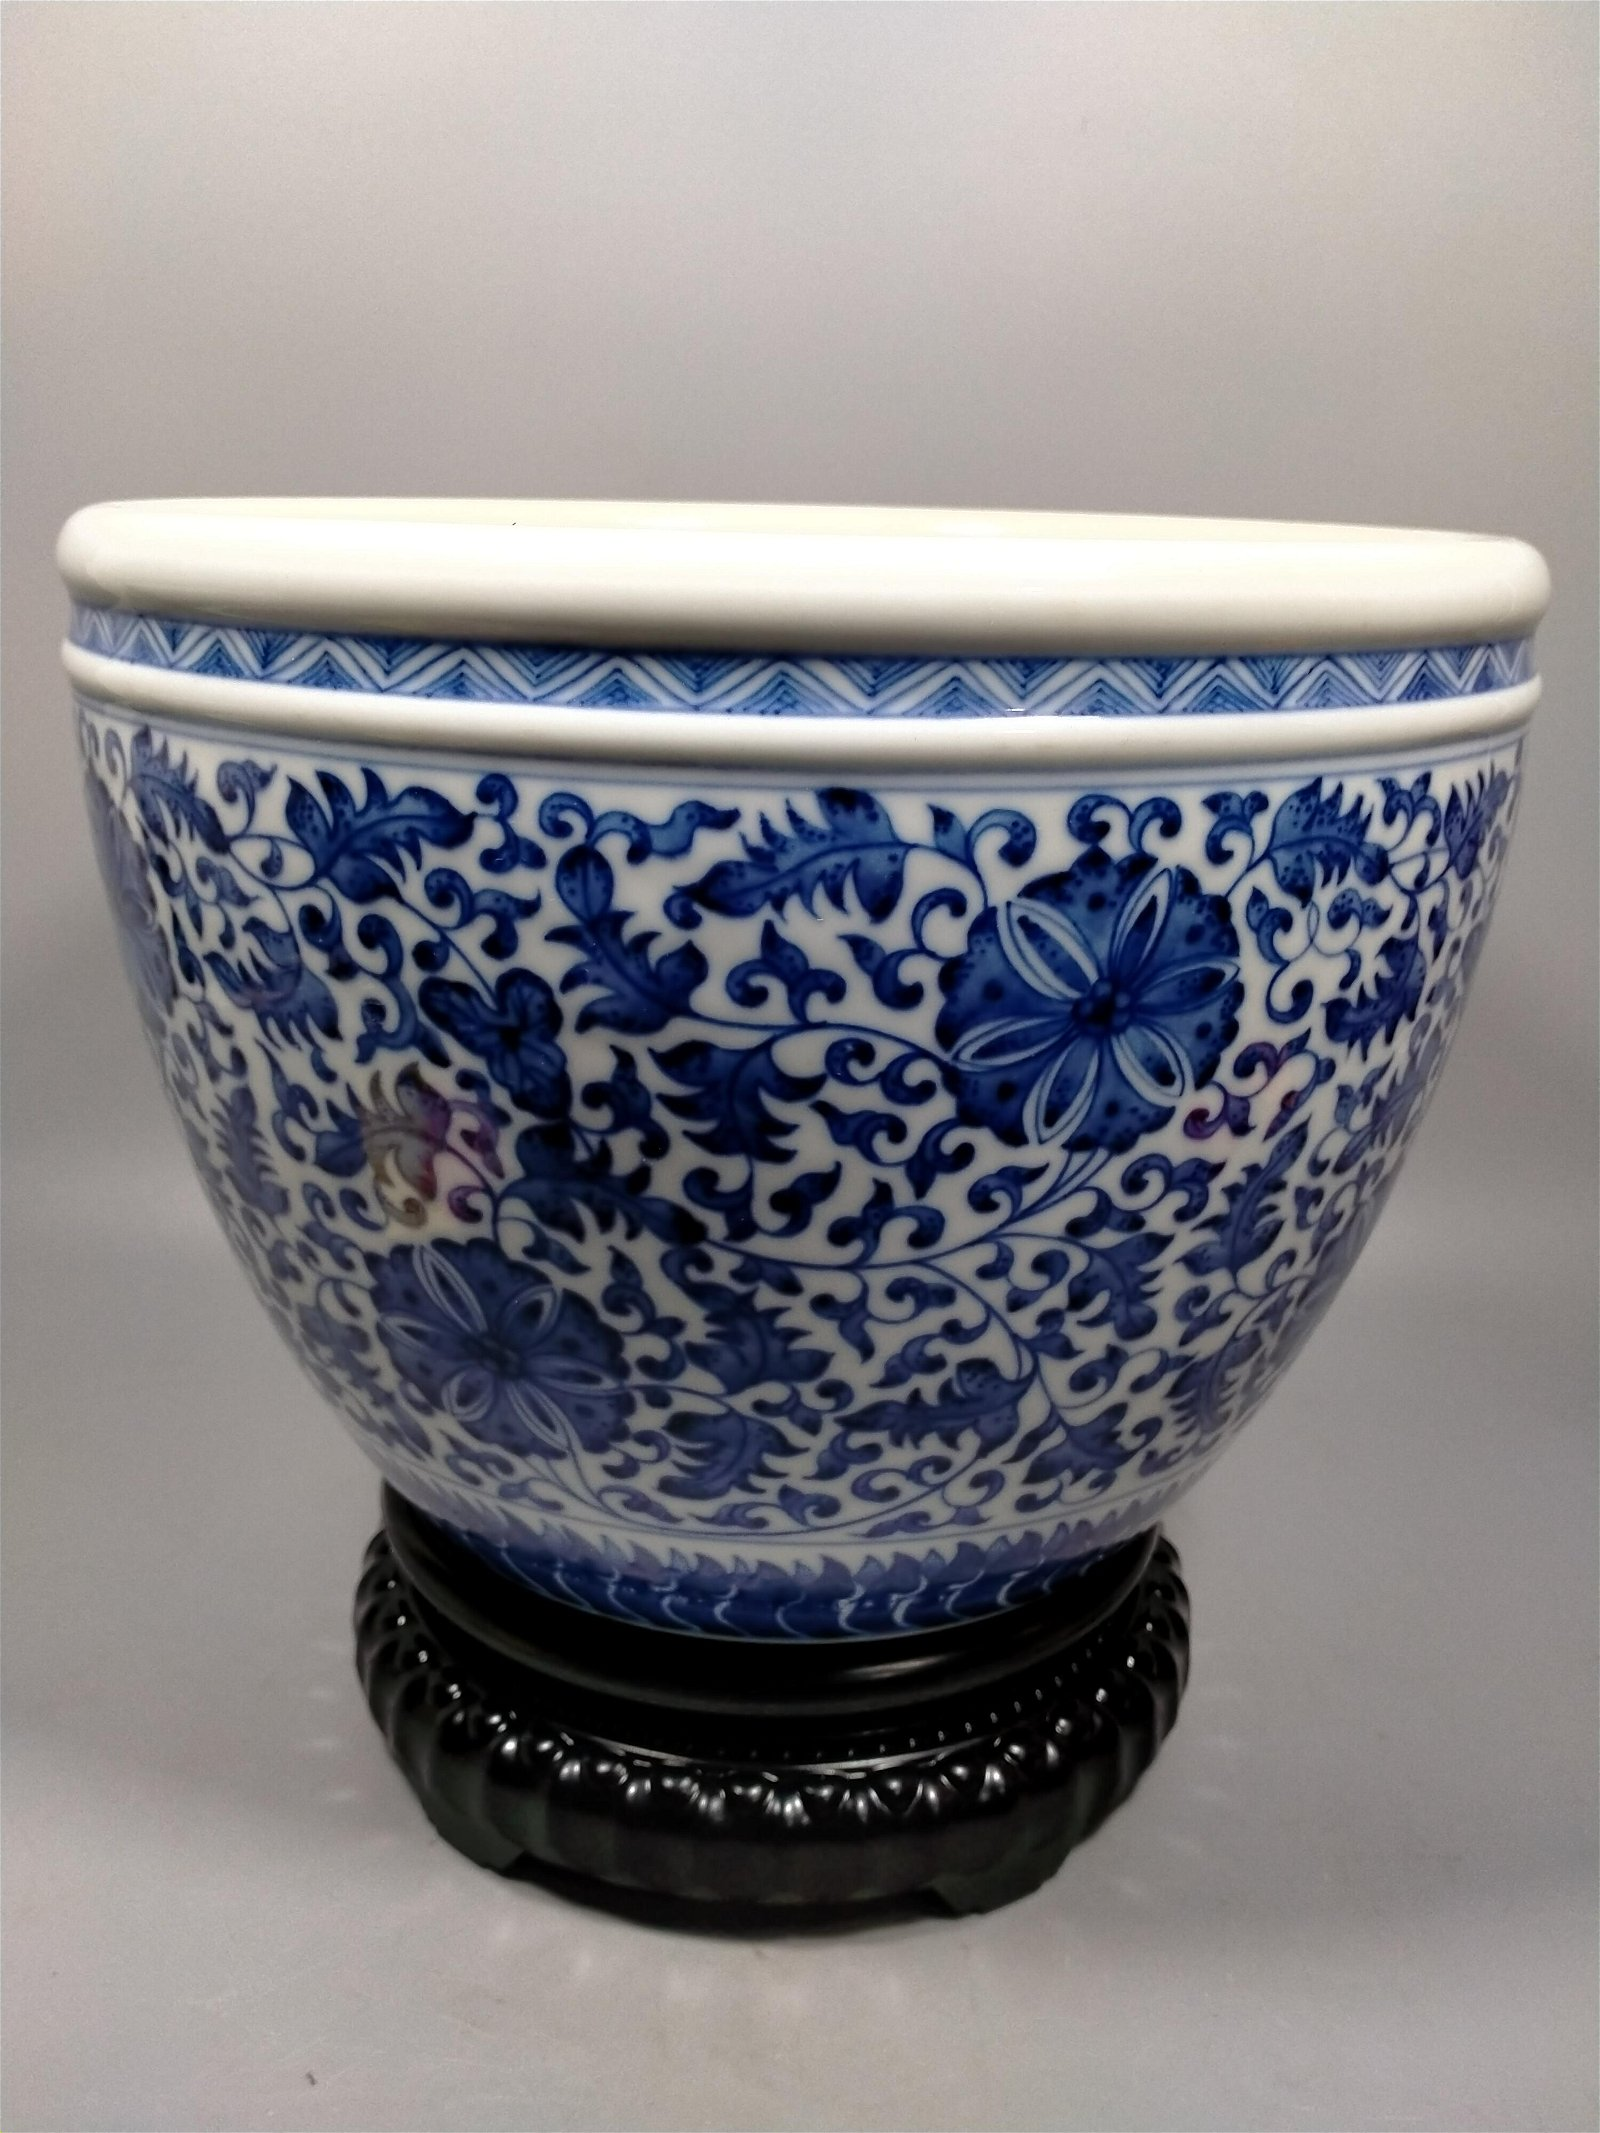 Blue and white porcelain vase in Qing Dynasty